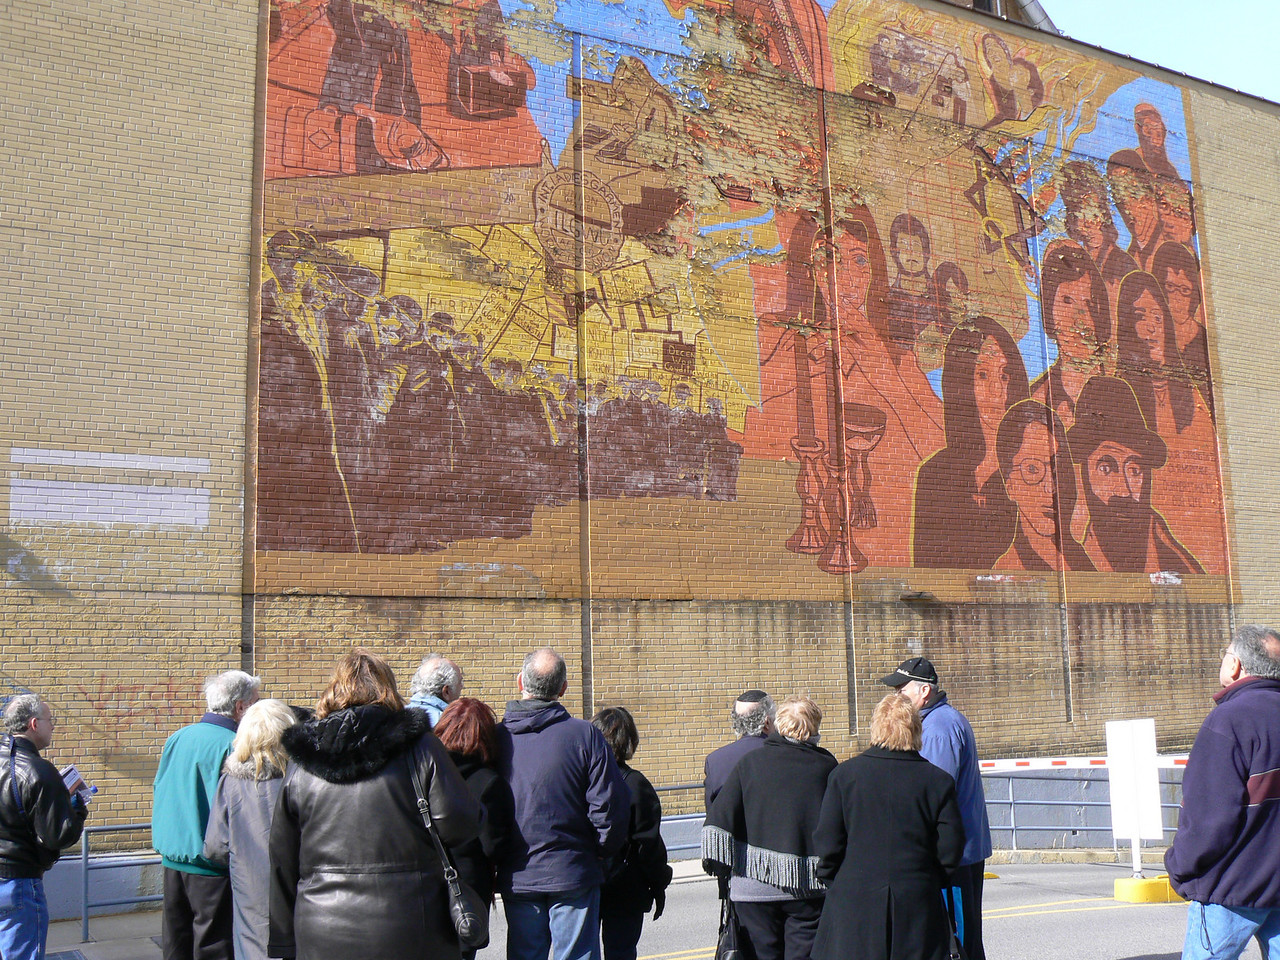 Public art from the 60's - showing Russian immigrants on the right, a woman blessing Shabbat candles with a kiddish cup in the center, on the left commemoration of the Triangle shirt factory fire. The LESC is trying to get this restored/preserved.